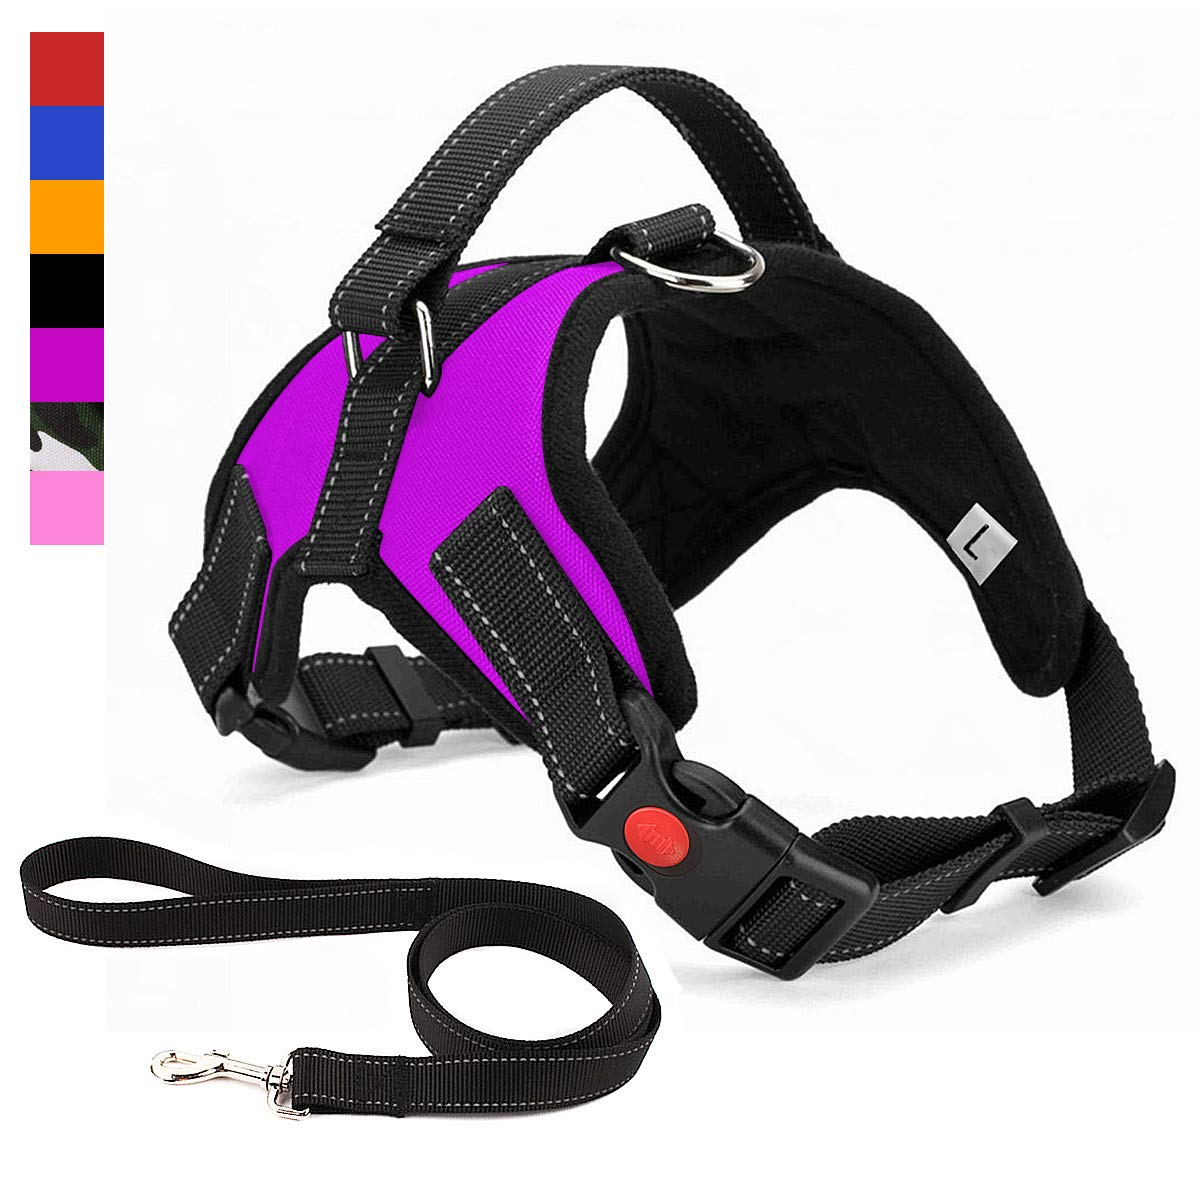 Musonic No Pull Dog Harness, Breathable Adjustable Comfort, Free Leash Included, for Small Medium Large Dog, Best for Training Walking Purple